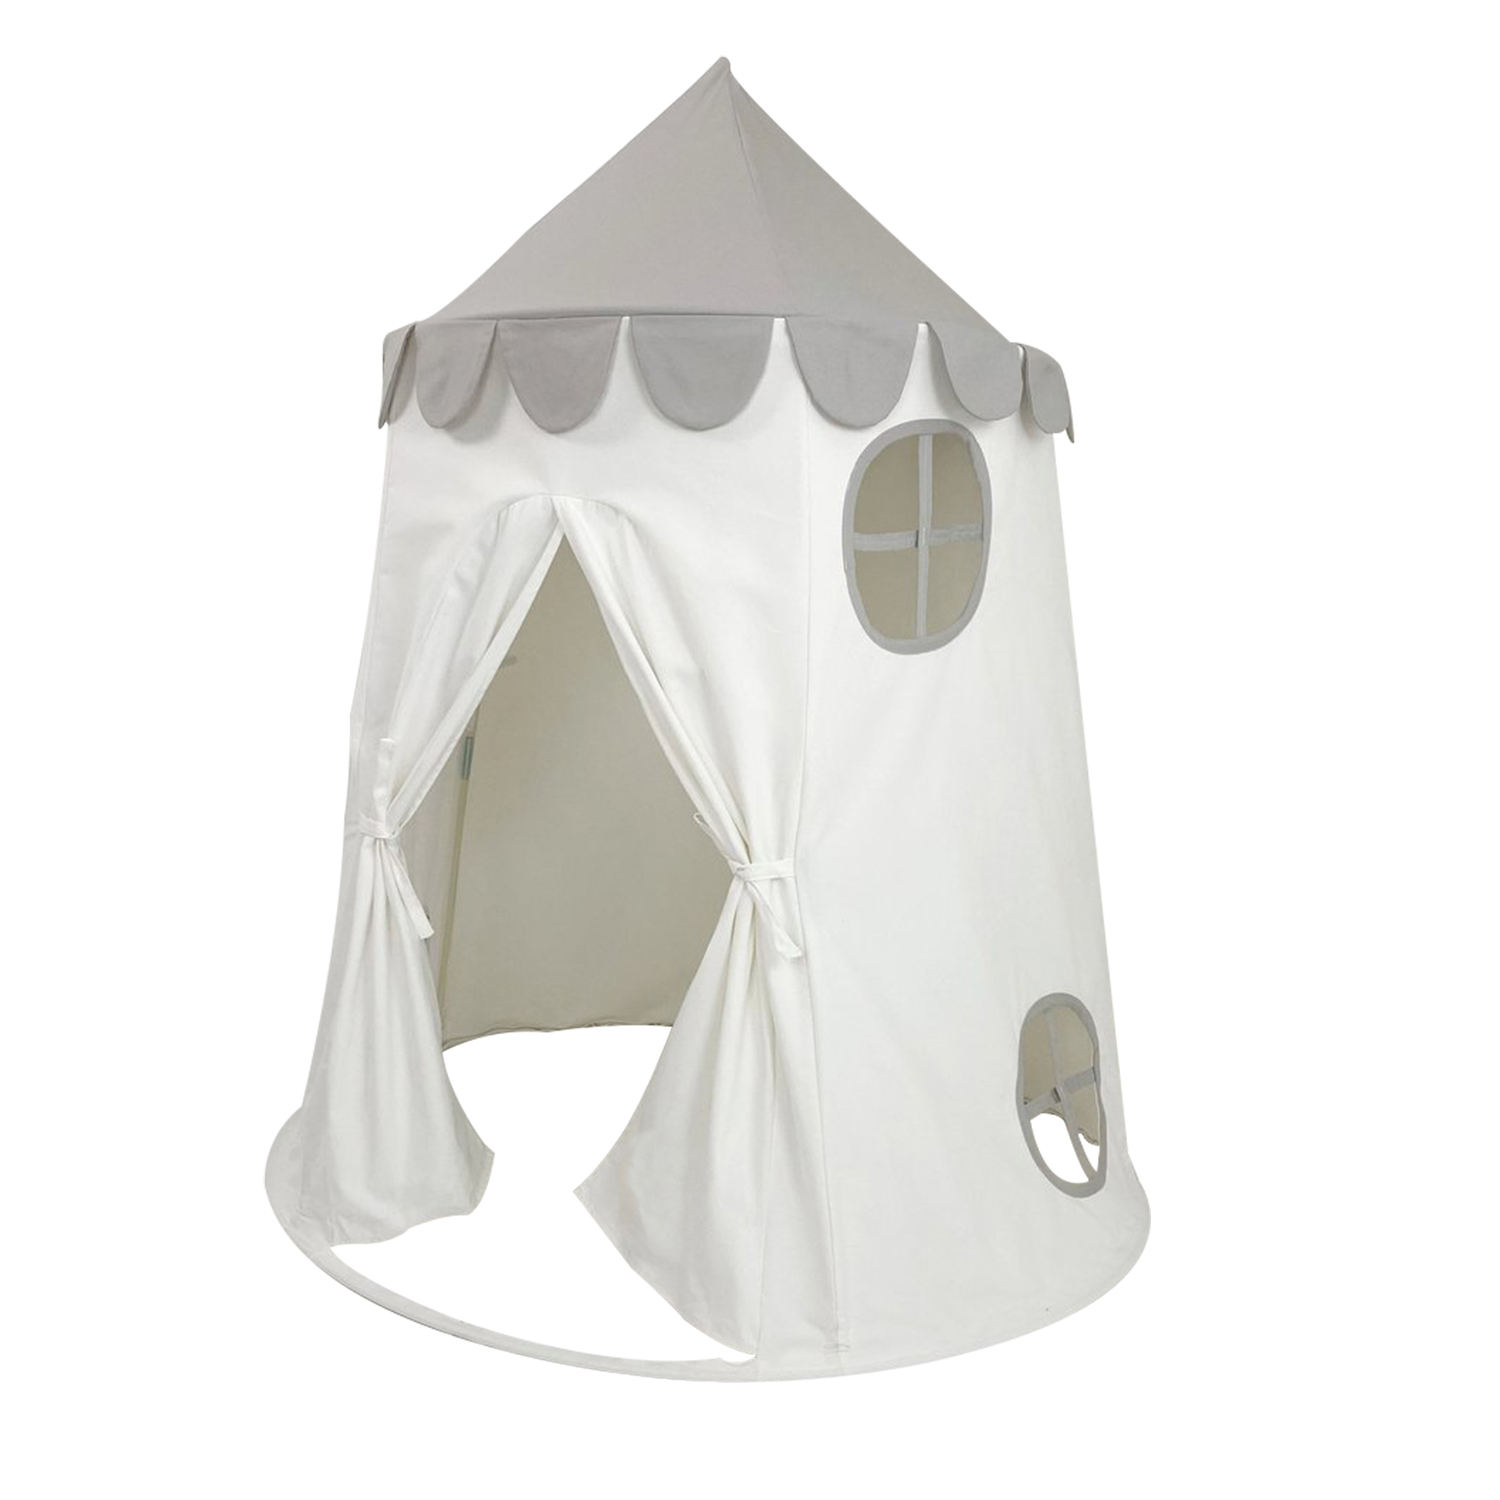 Wholesale kid indoor toy house teepee tent kids play tent kids pirate tent in home